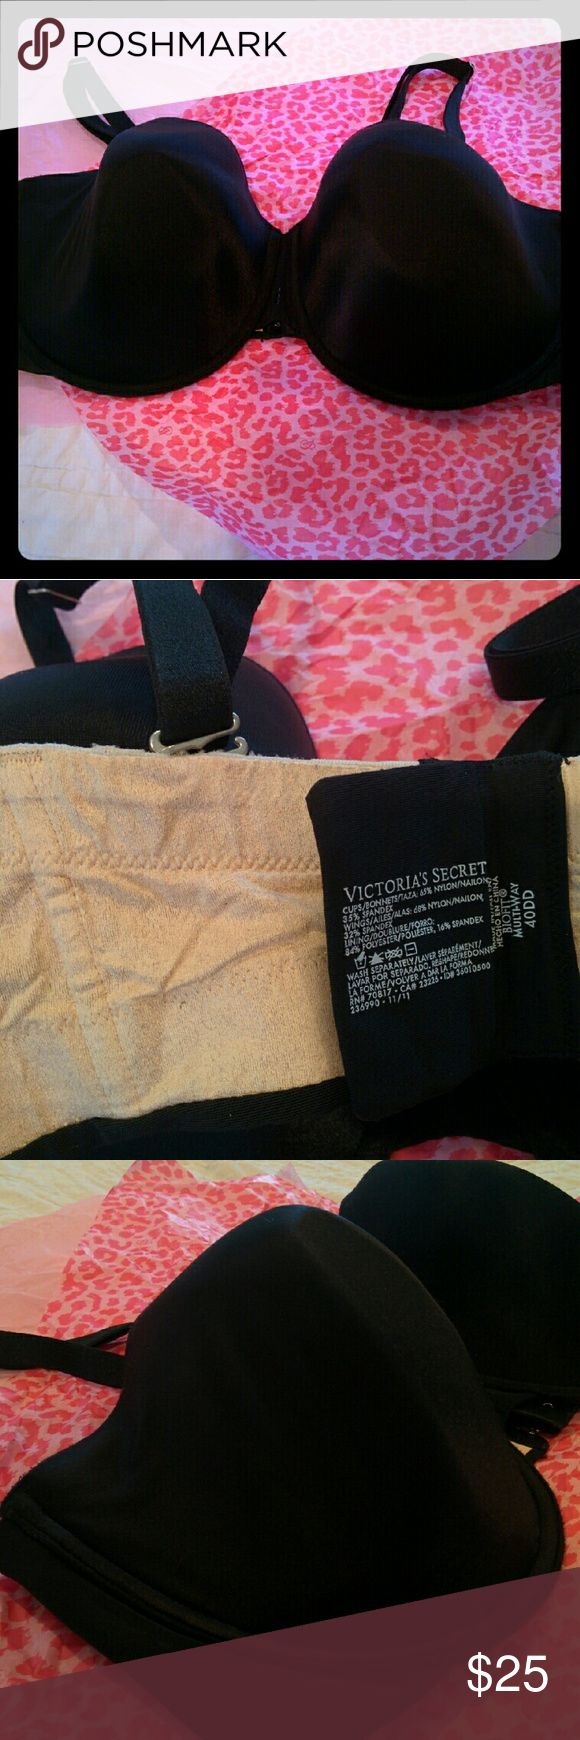 """Victoria Multi-way black bra converts to strapless Victoria's Secret black bra, no frills or lace. """"Multi-Way Biofit"""". Straps are adjustable in length & location on bra, can be removed completely to go strapless. Molded cups for shape & support. See photo 2 for materials. Size 40DD, fits to size. Good used condition. Victoria's Secret Intimates & Sleepwear Bras"""